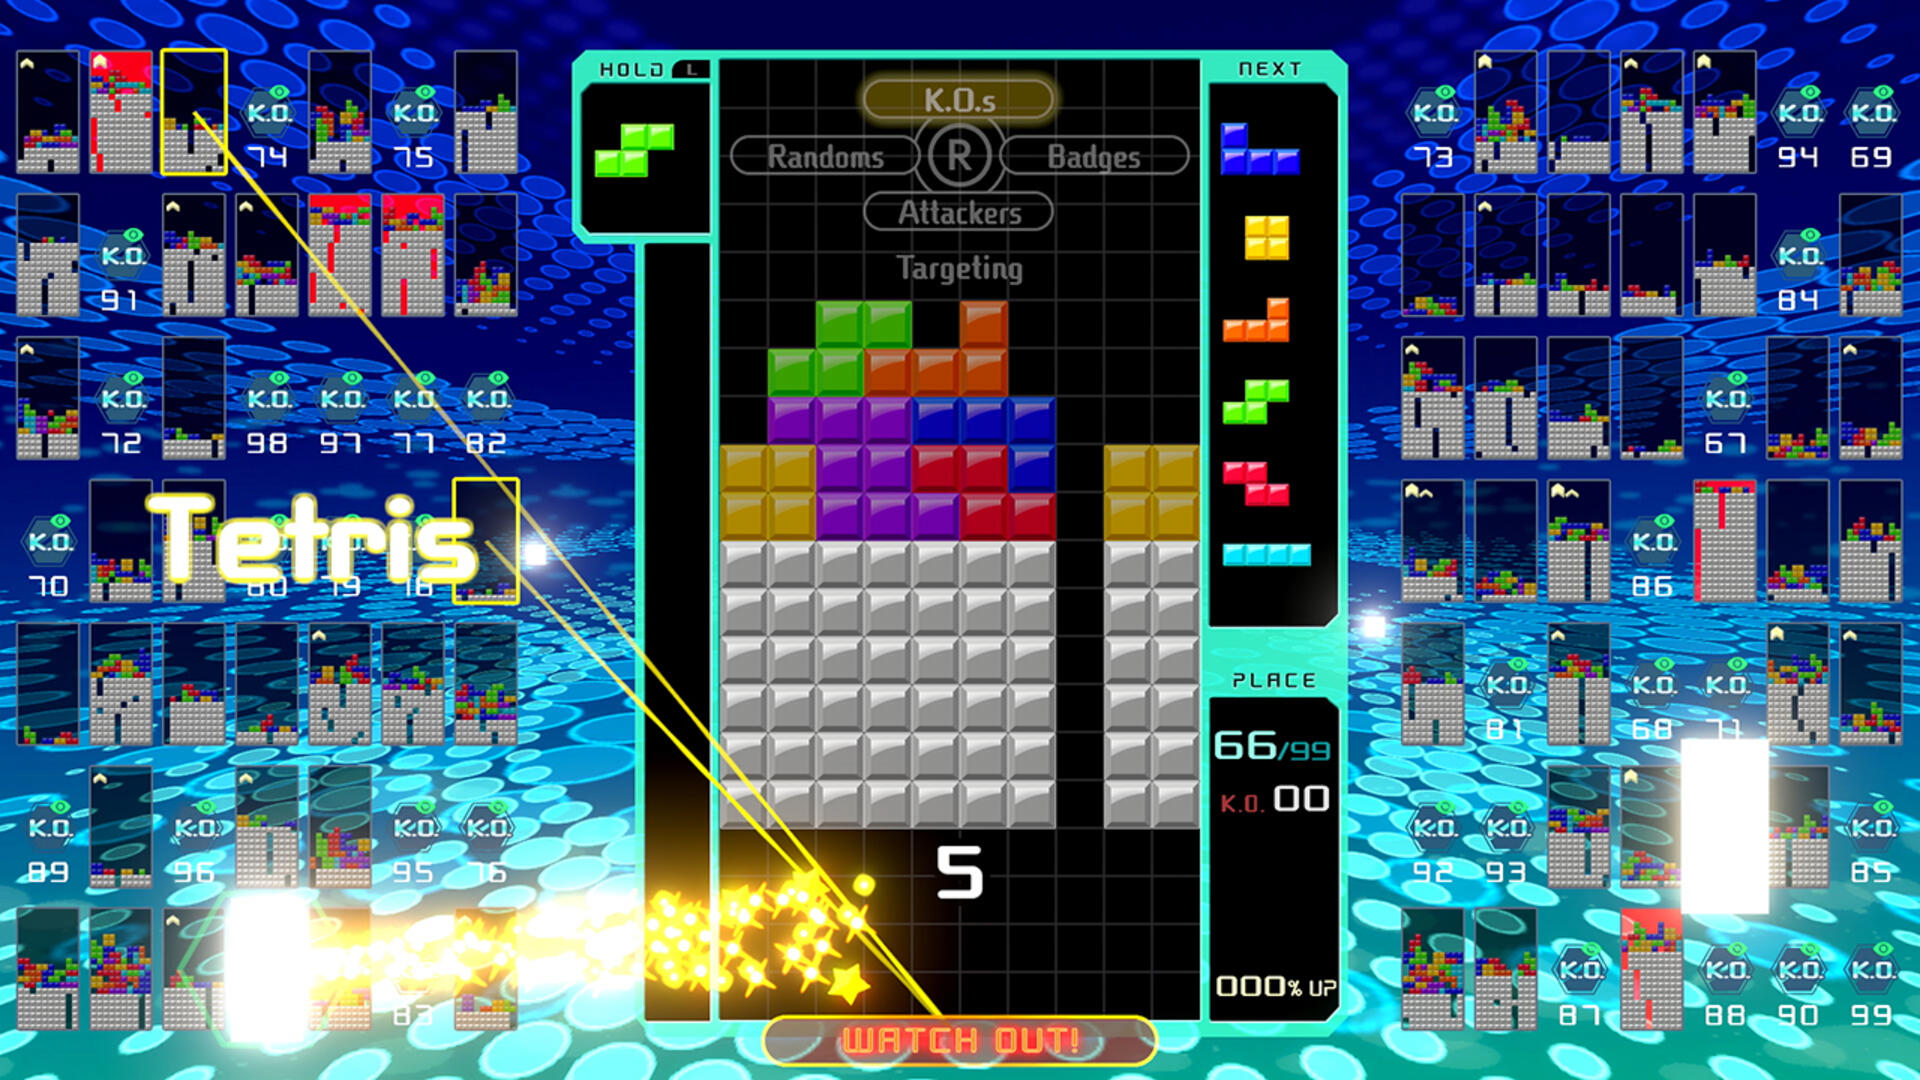 Nintendo Switch Online Could Get More Exclusive Games Like Tetris 99 In the Future